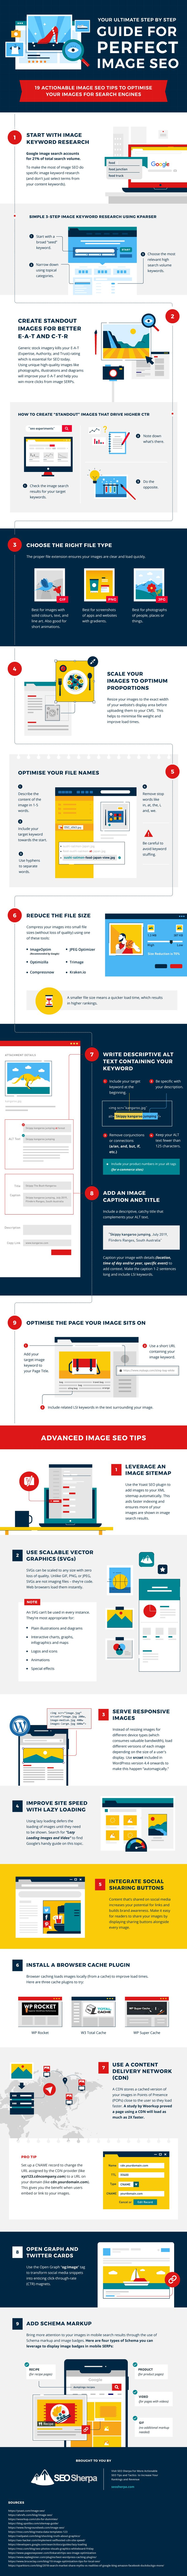 Image Search Engine Optimization Infographic Seo Tips Infographic Infographic Marketing